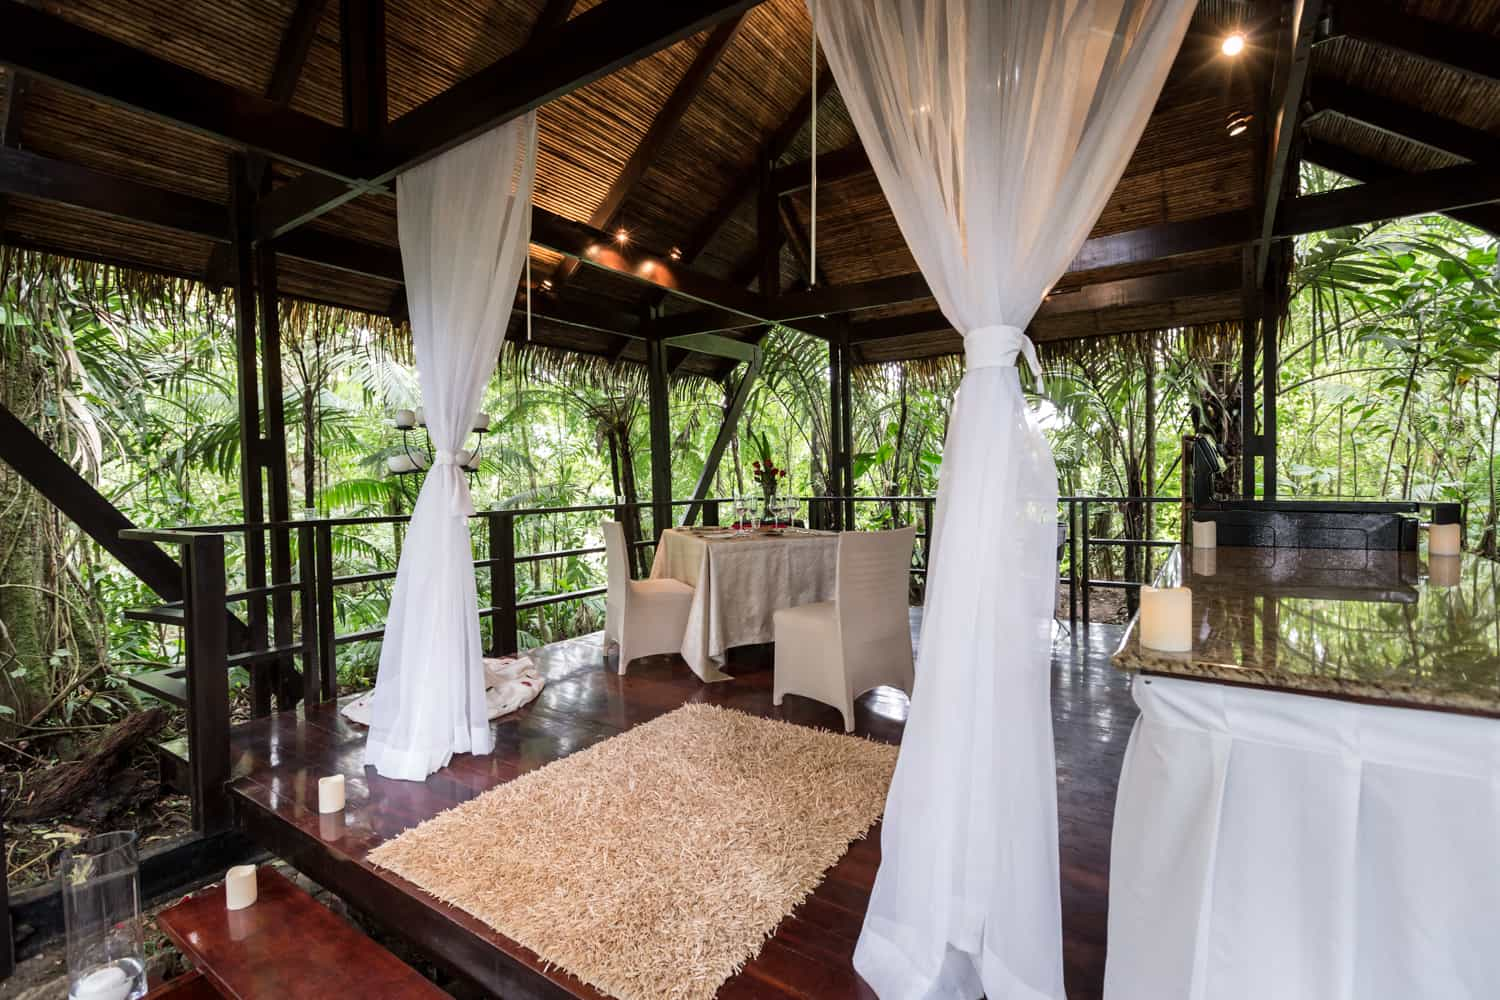 Location for romantic couples dinner and wedding ceremony.